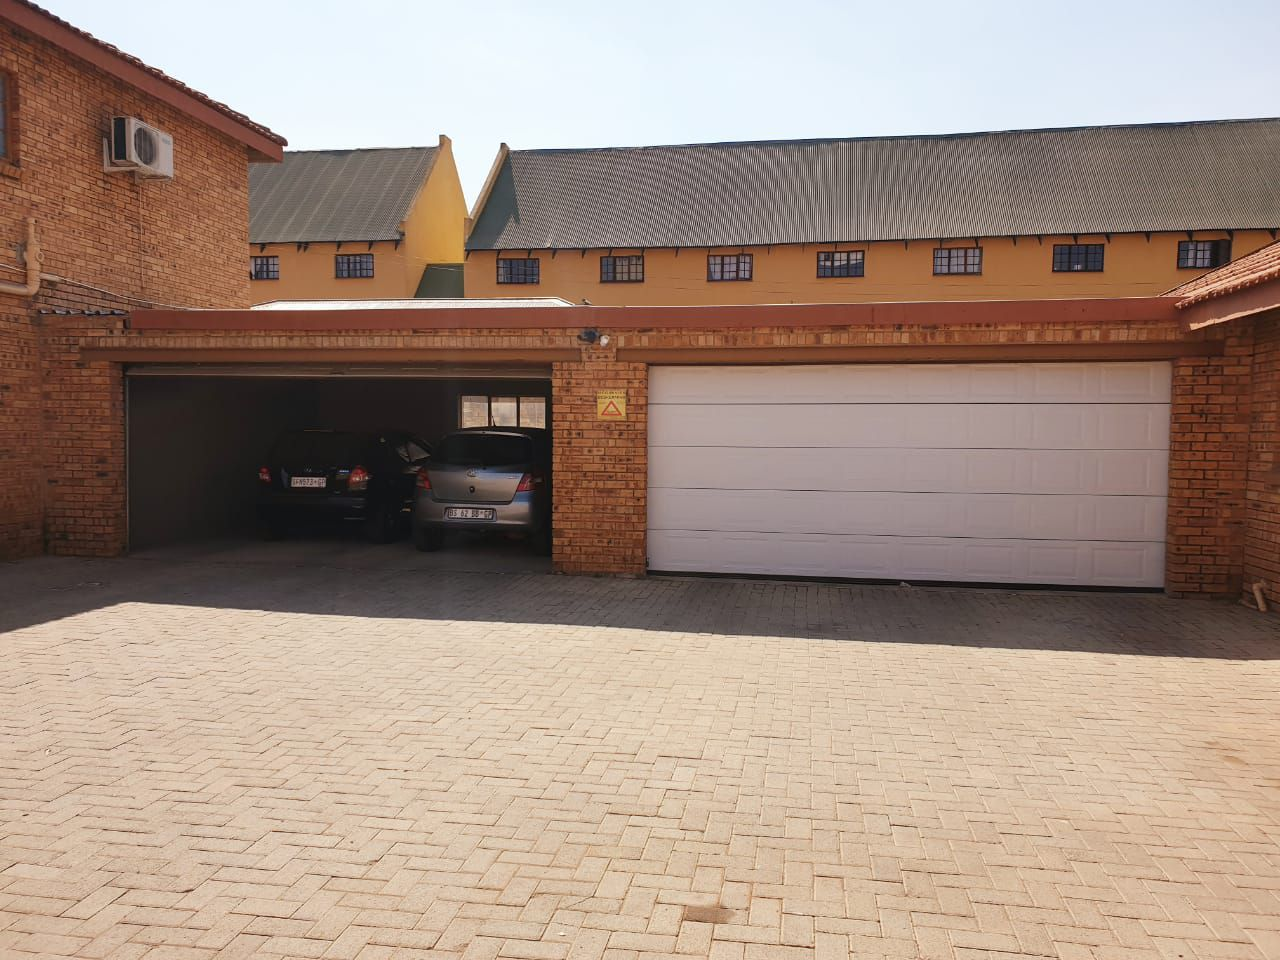 House in Bult - WhatsApp Image 2019-08-26 at 15.11.30 (1).jpeg